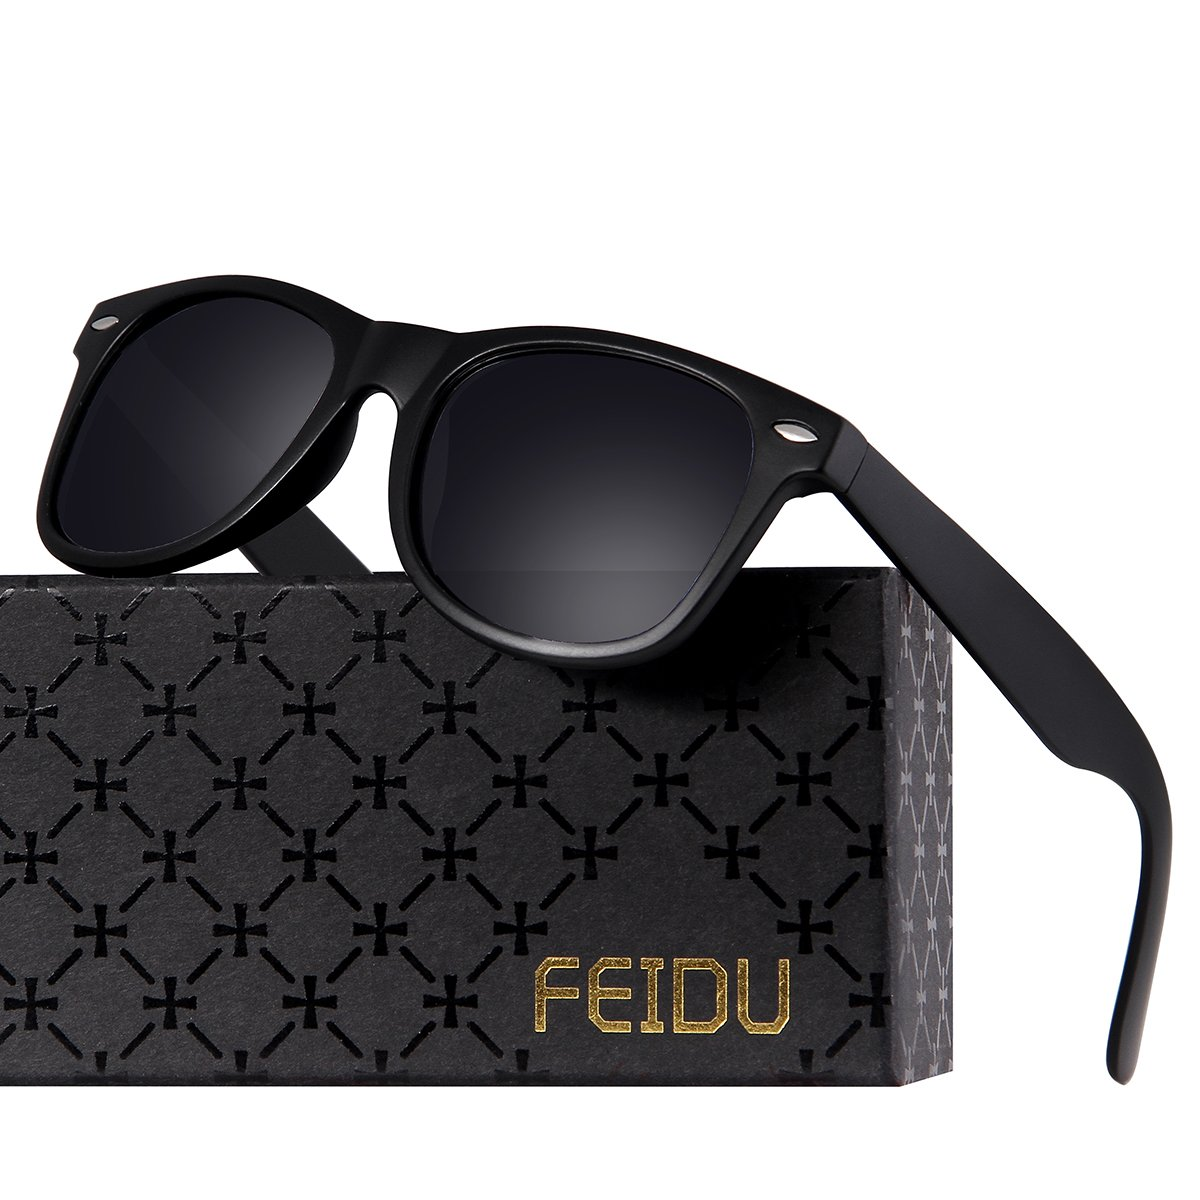 Polarized Wayfarer Sunglasses for Men - FEIDU HD Vision Polarized Sunglasses Mens FD2149 (A-black/matte, 2.08) by FEIDU